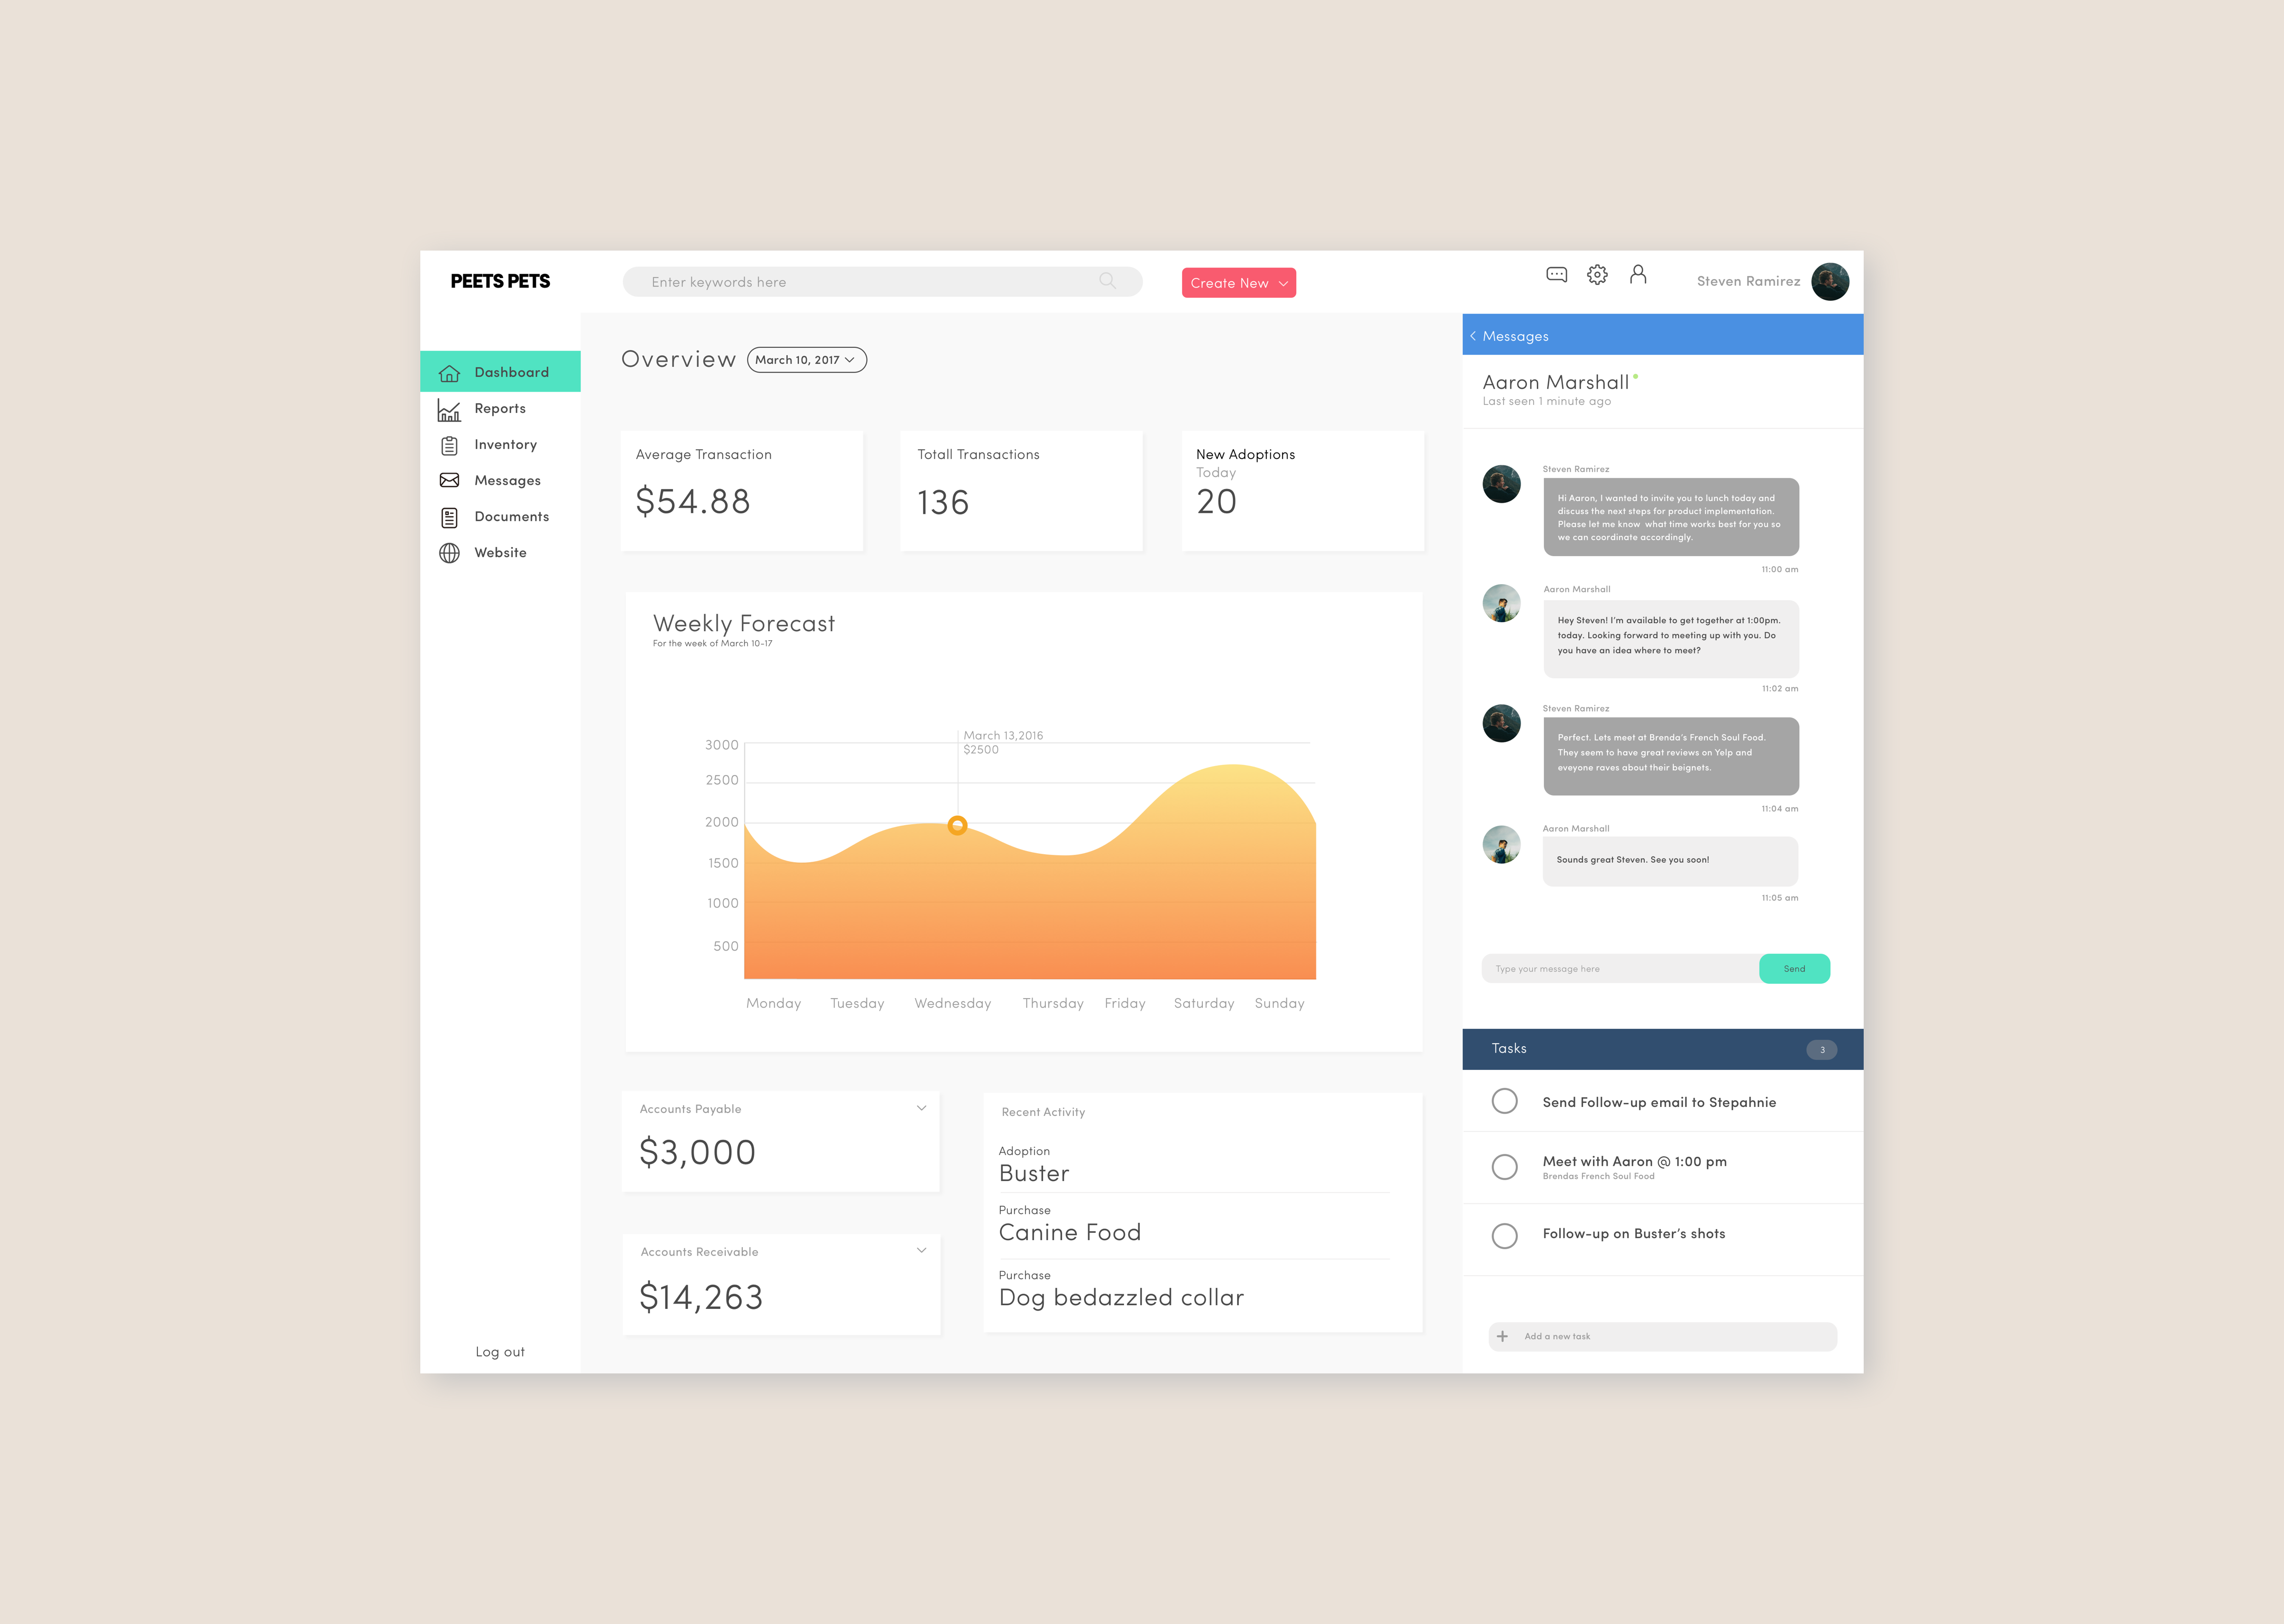 Dashboard_Overview